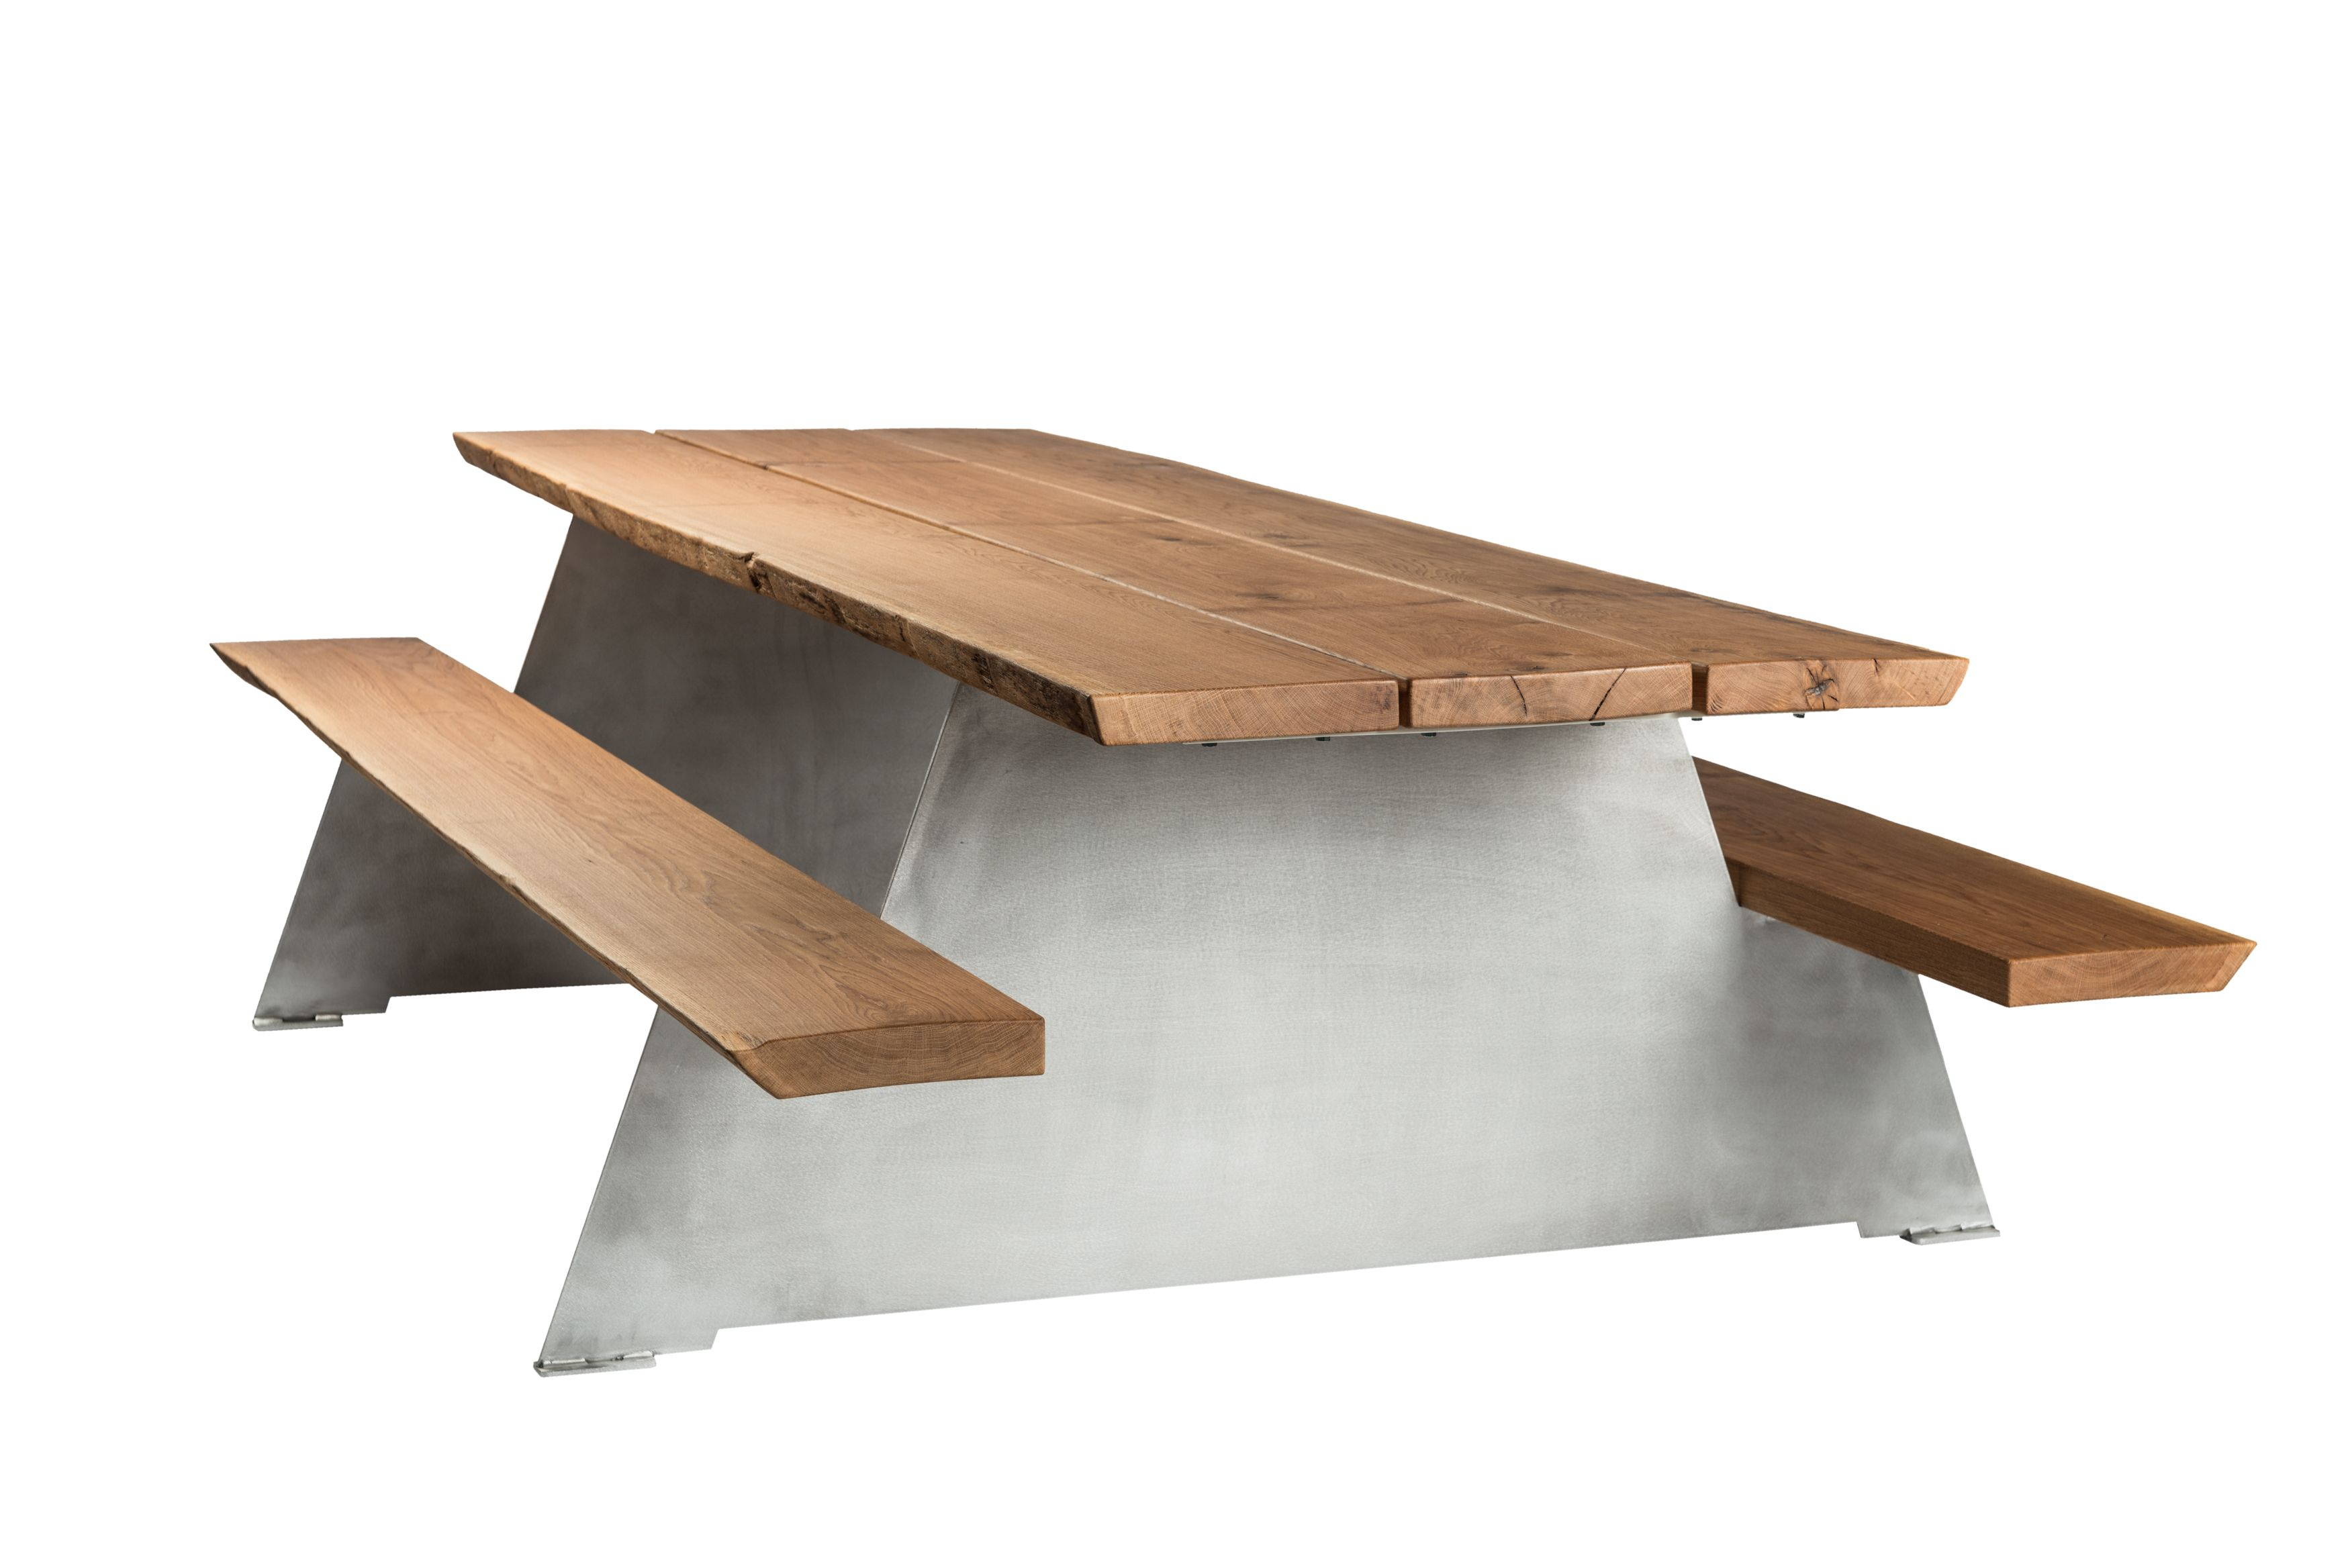 Luxurious design picnic table in oak wood and aluminium. #design #picnictable